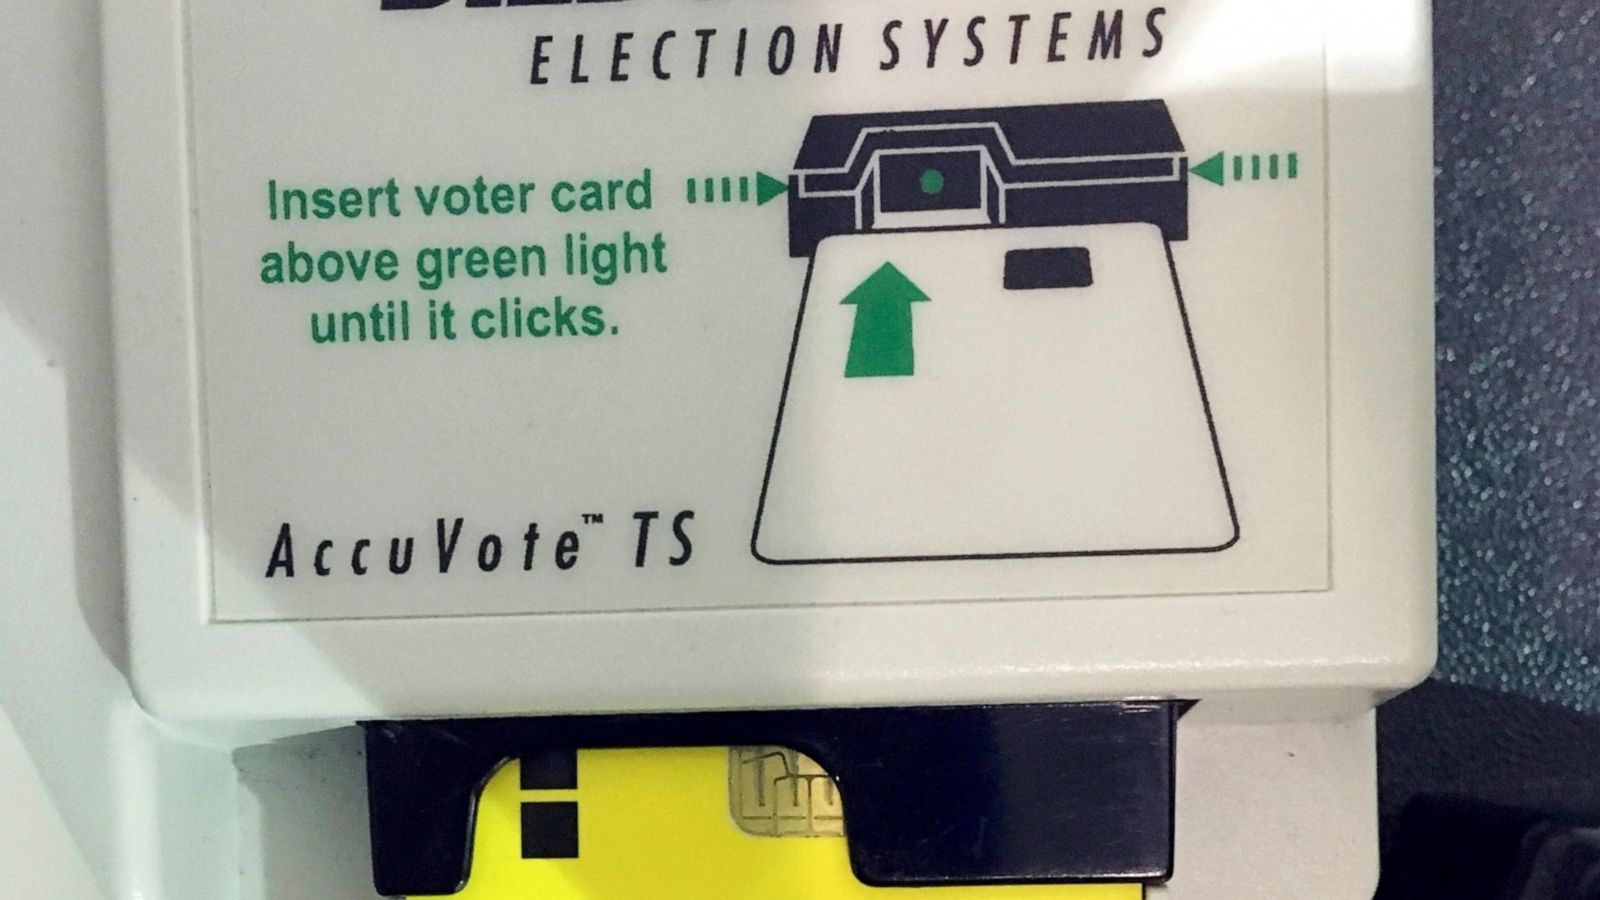 Georgia election officials accused of destroying evidence